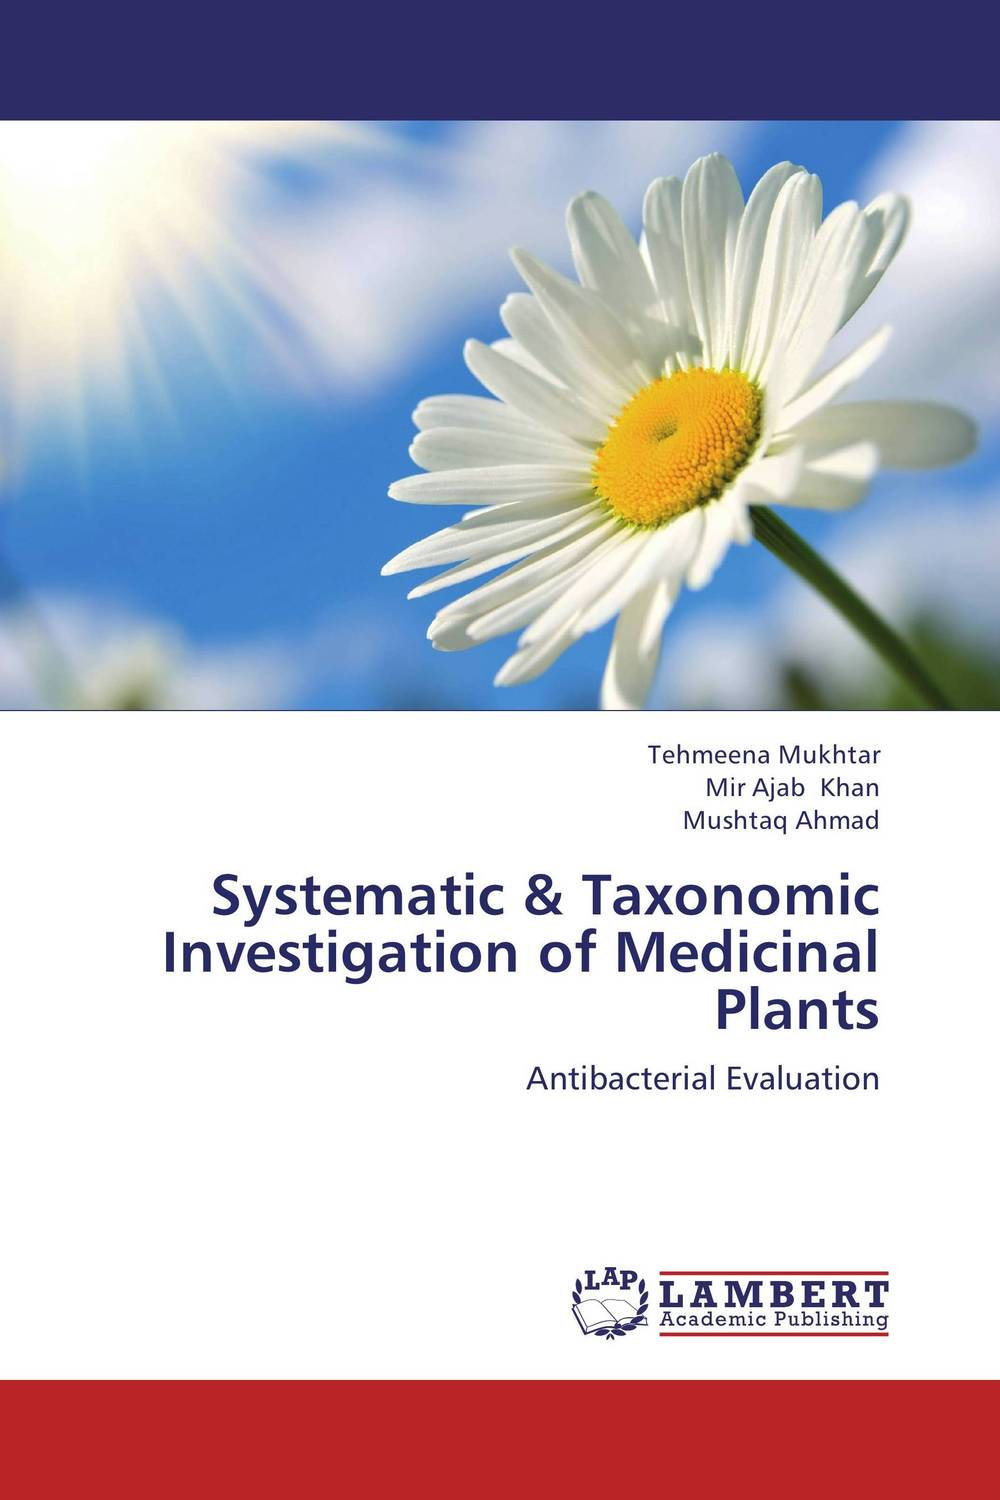 Systematic & Taxonomic Investigation of Medicinal Plants